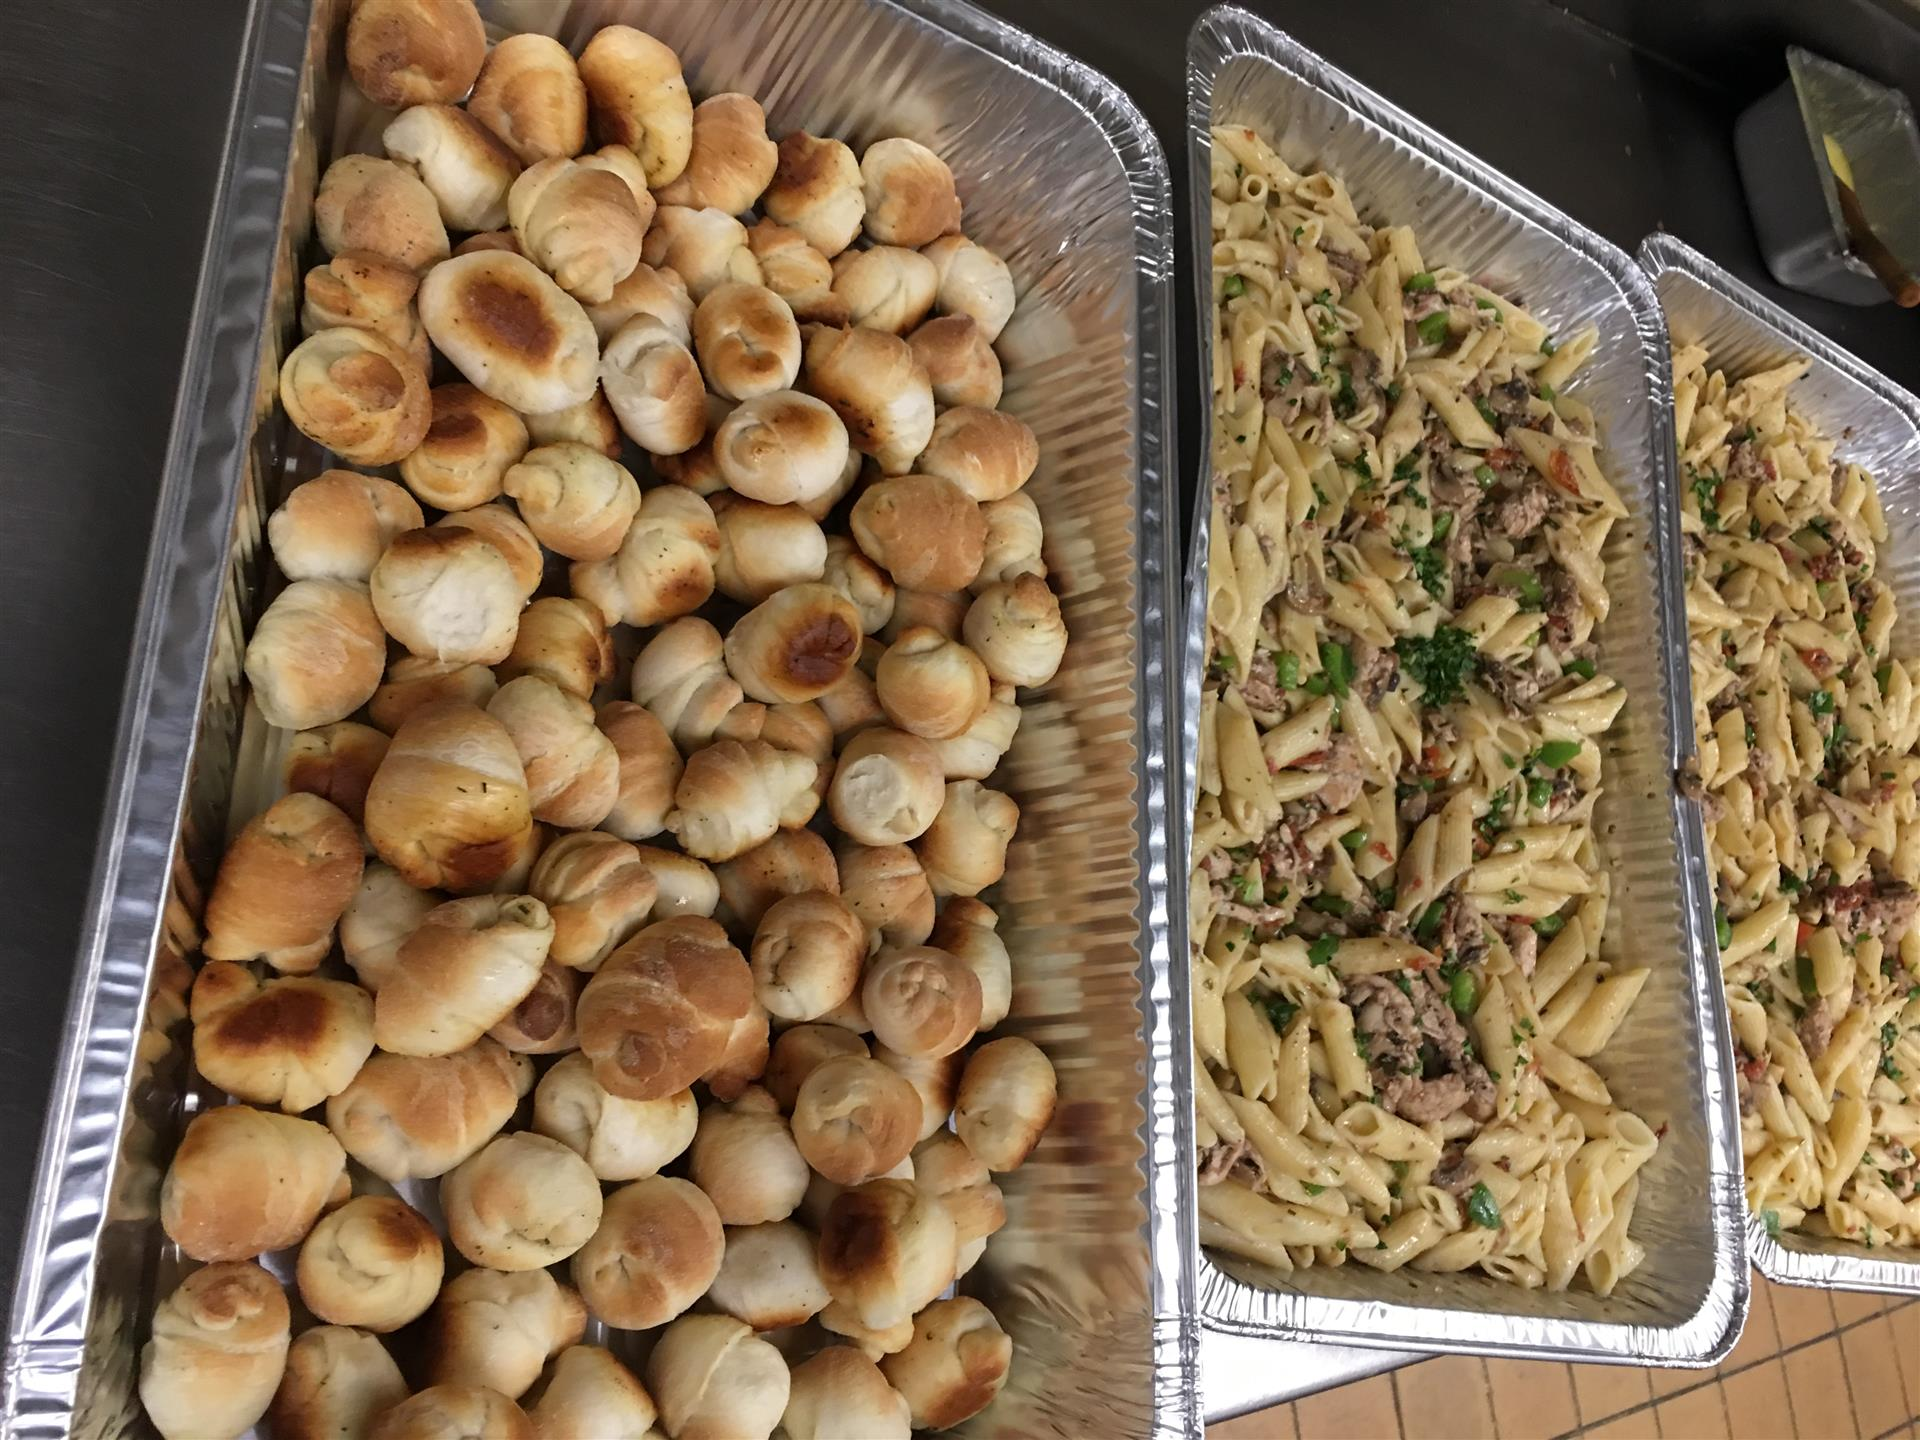 assortment of garlic knots and pasta in trays on a table